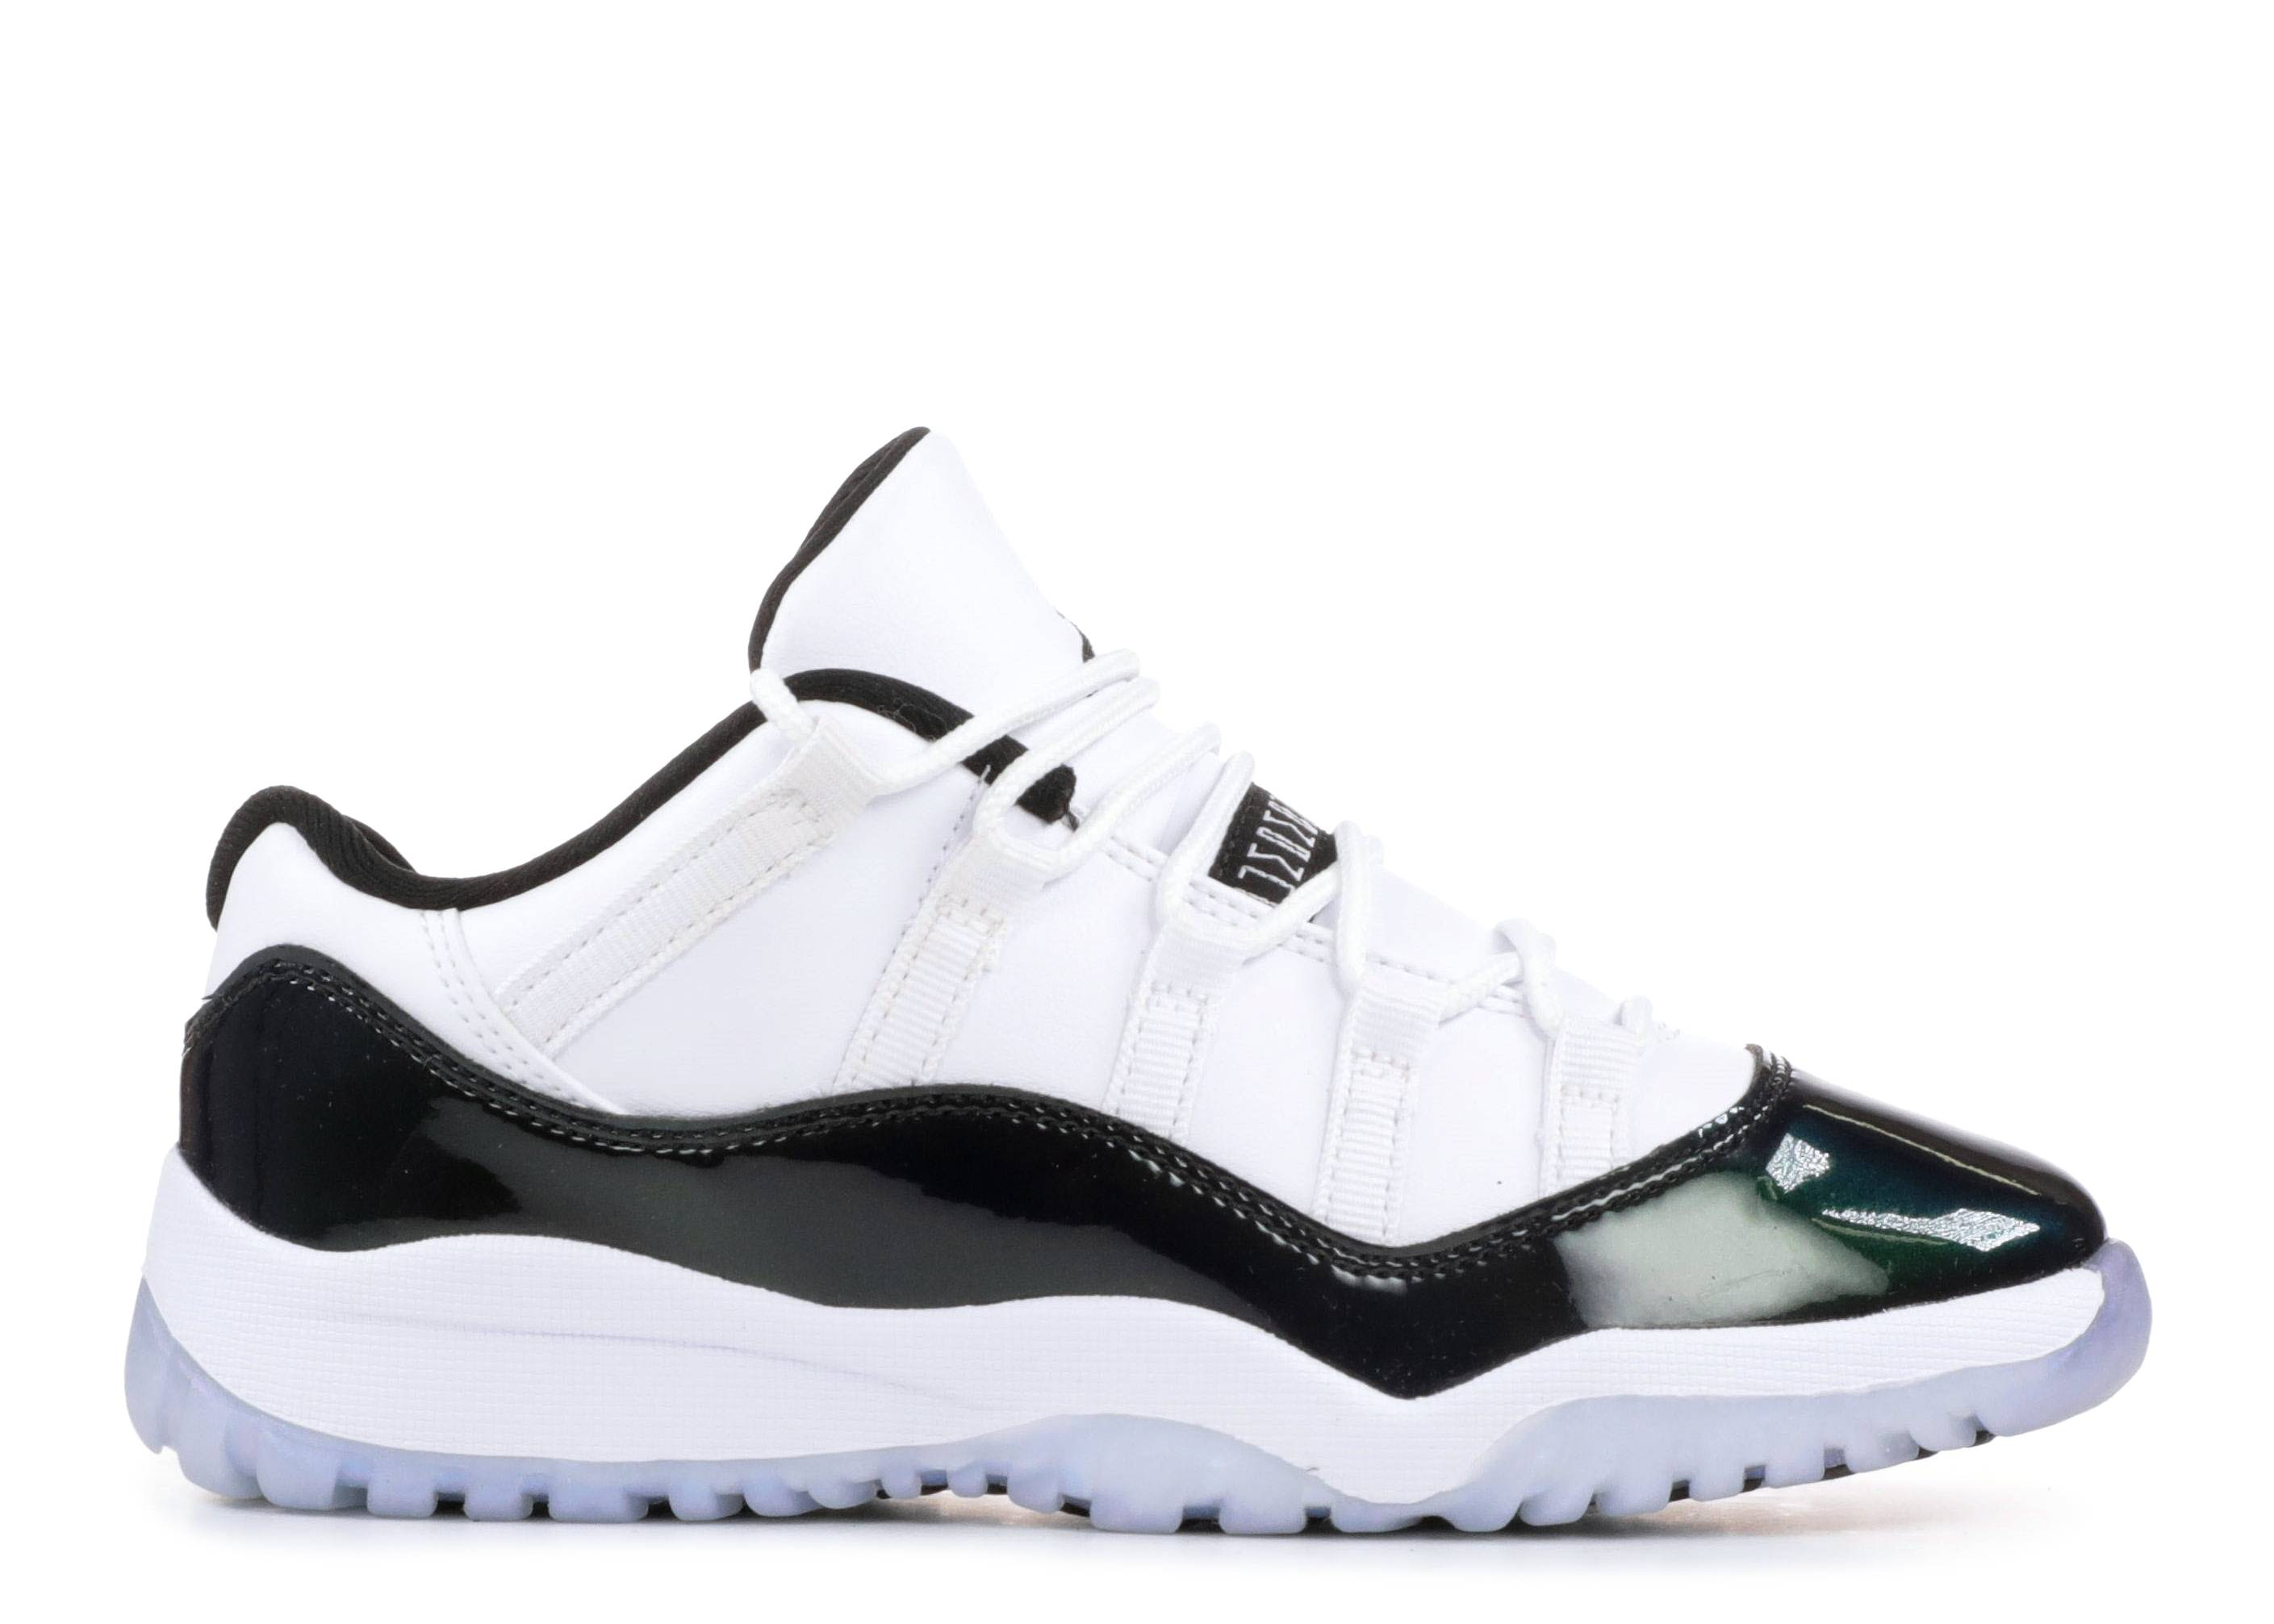 "Air Jordan 11 Retro Low PS 'Emerald' ""Emerald"""